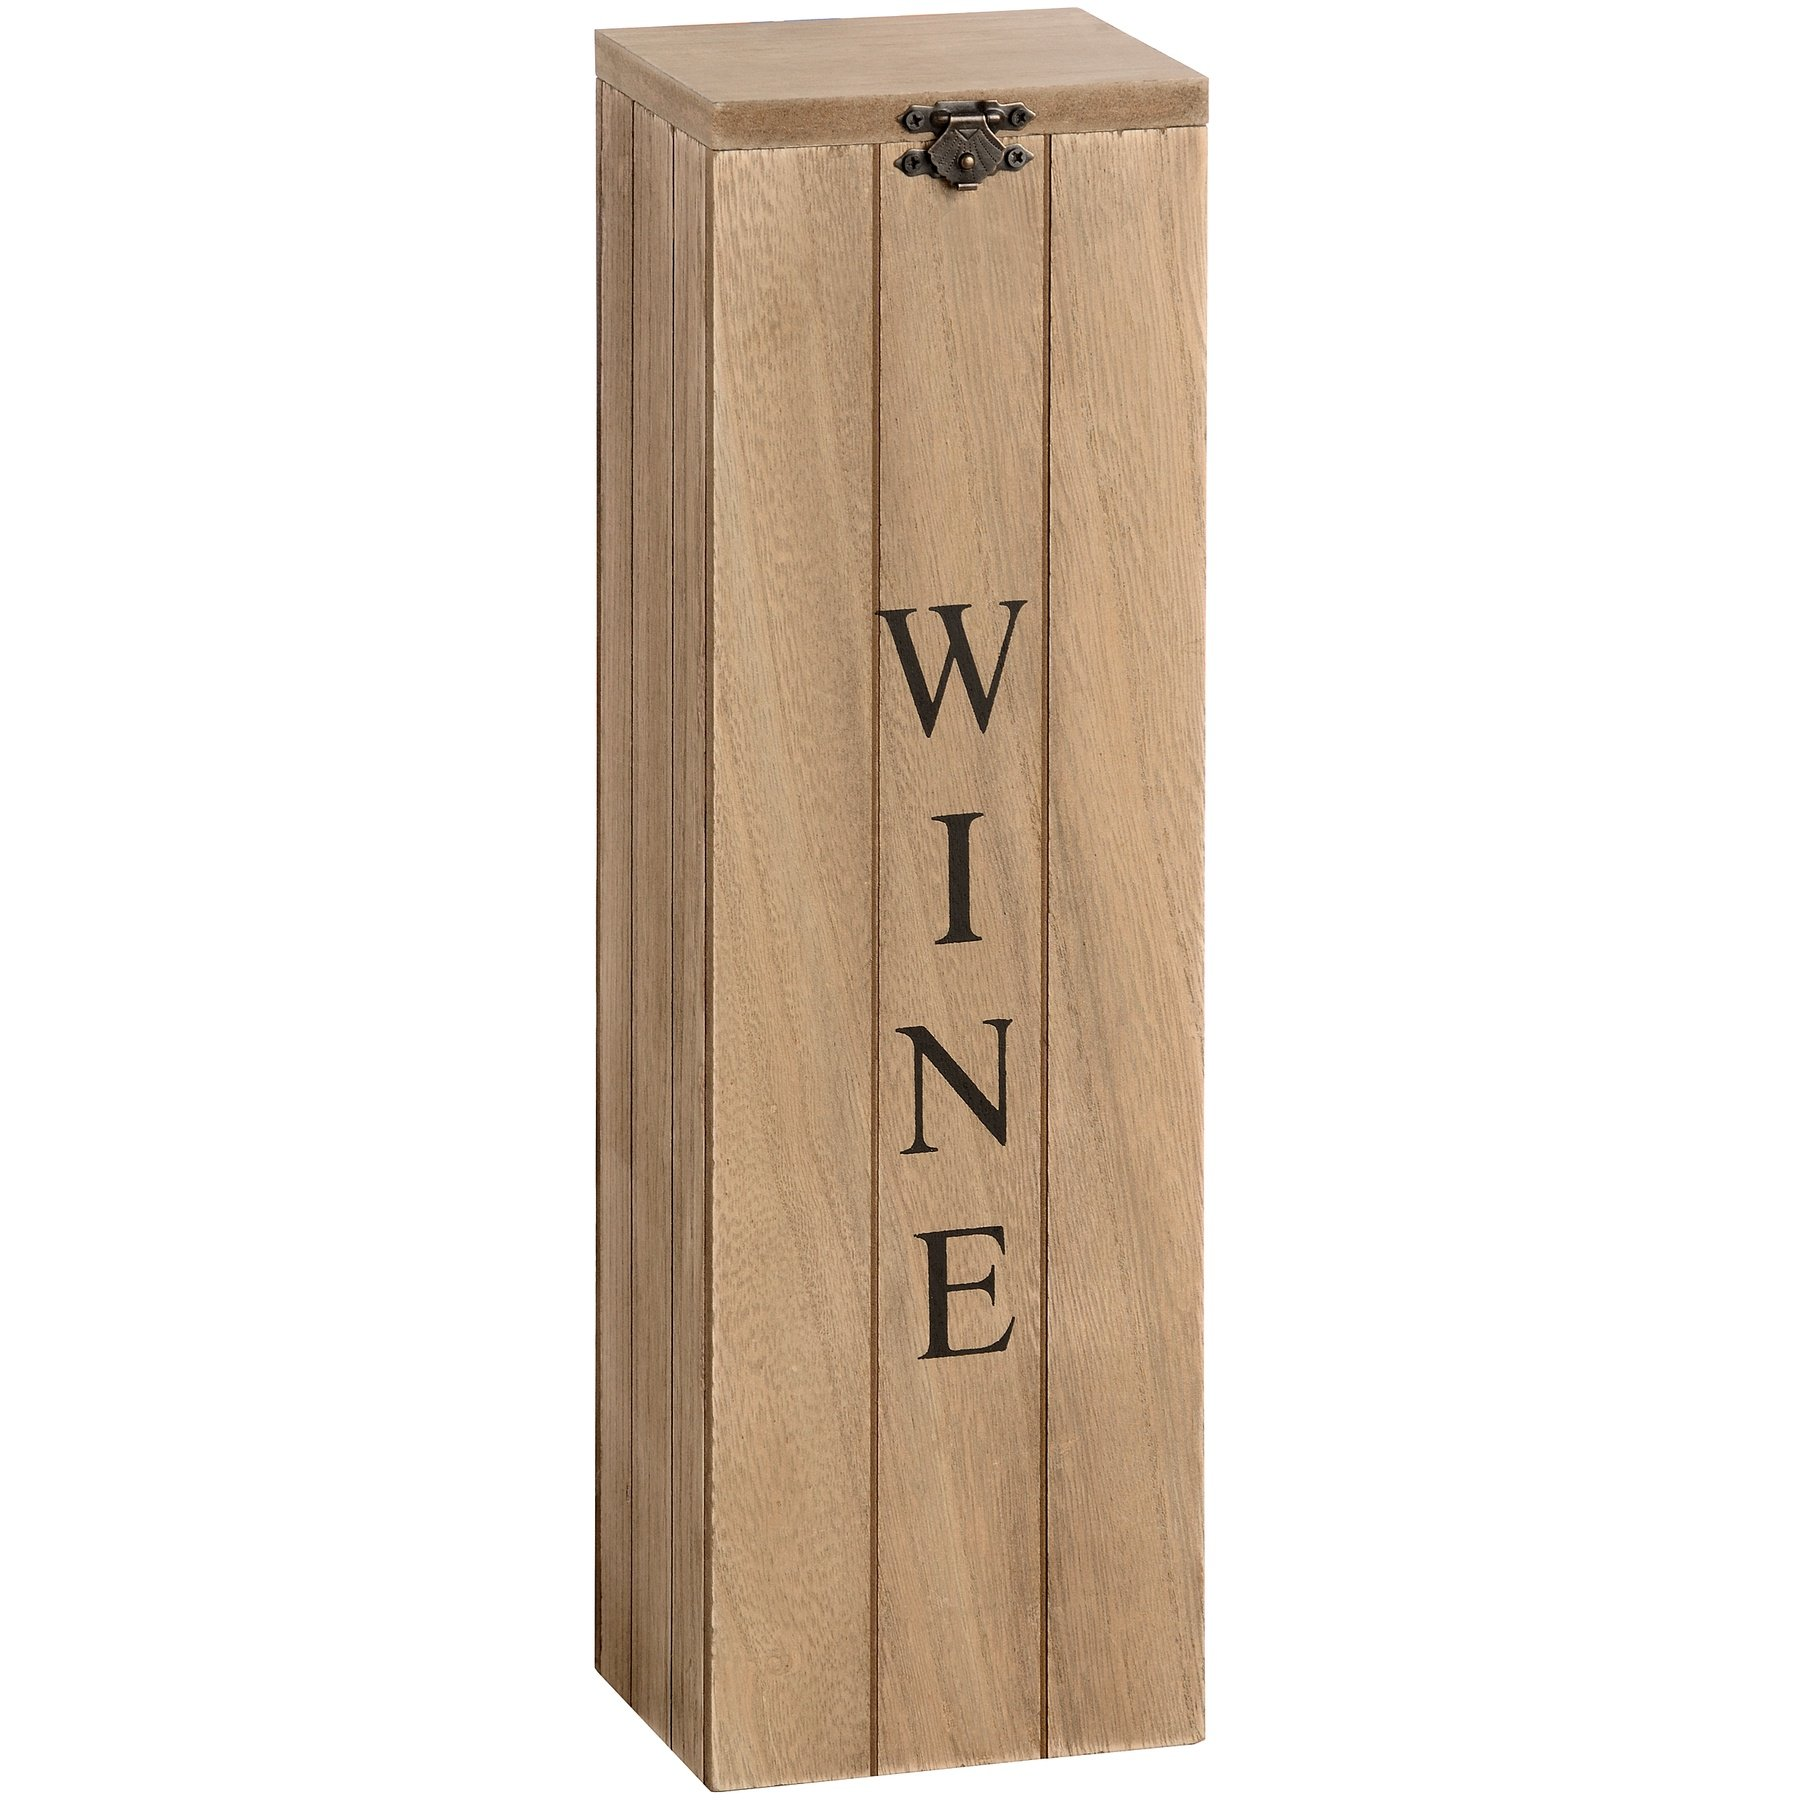 Hill Interiors Wooden Wine Box (One Size) (Brown)